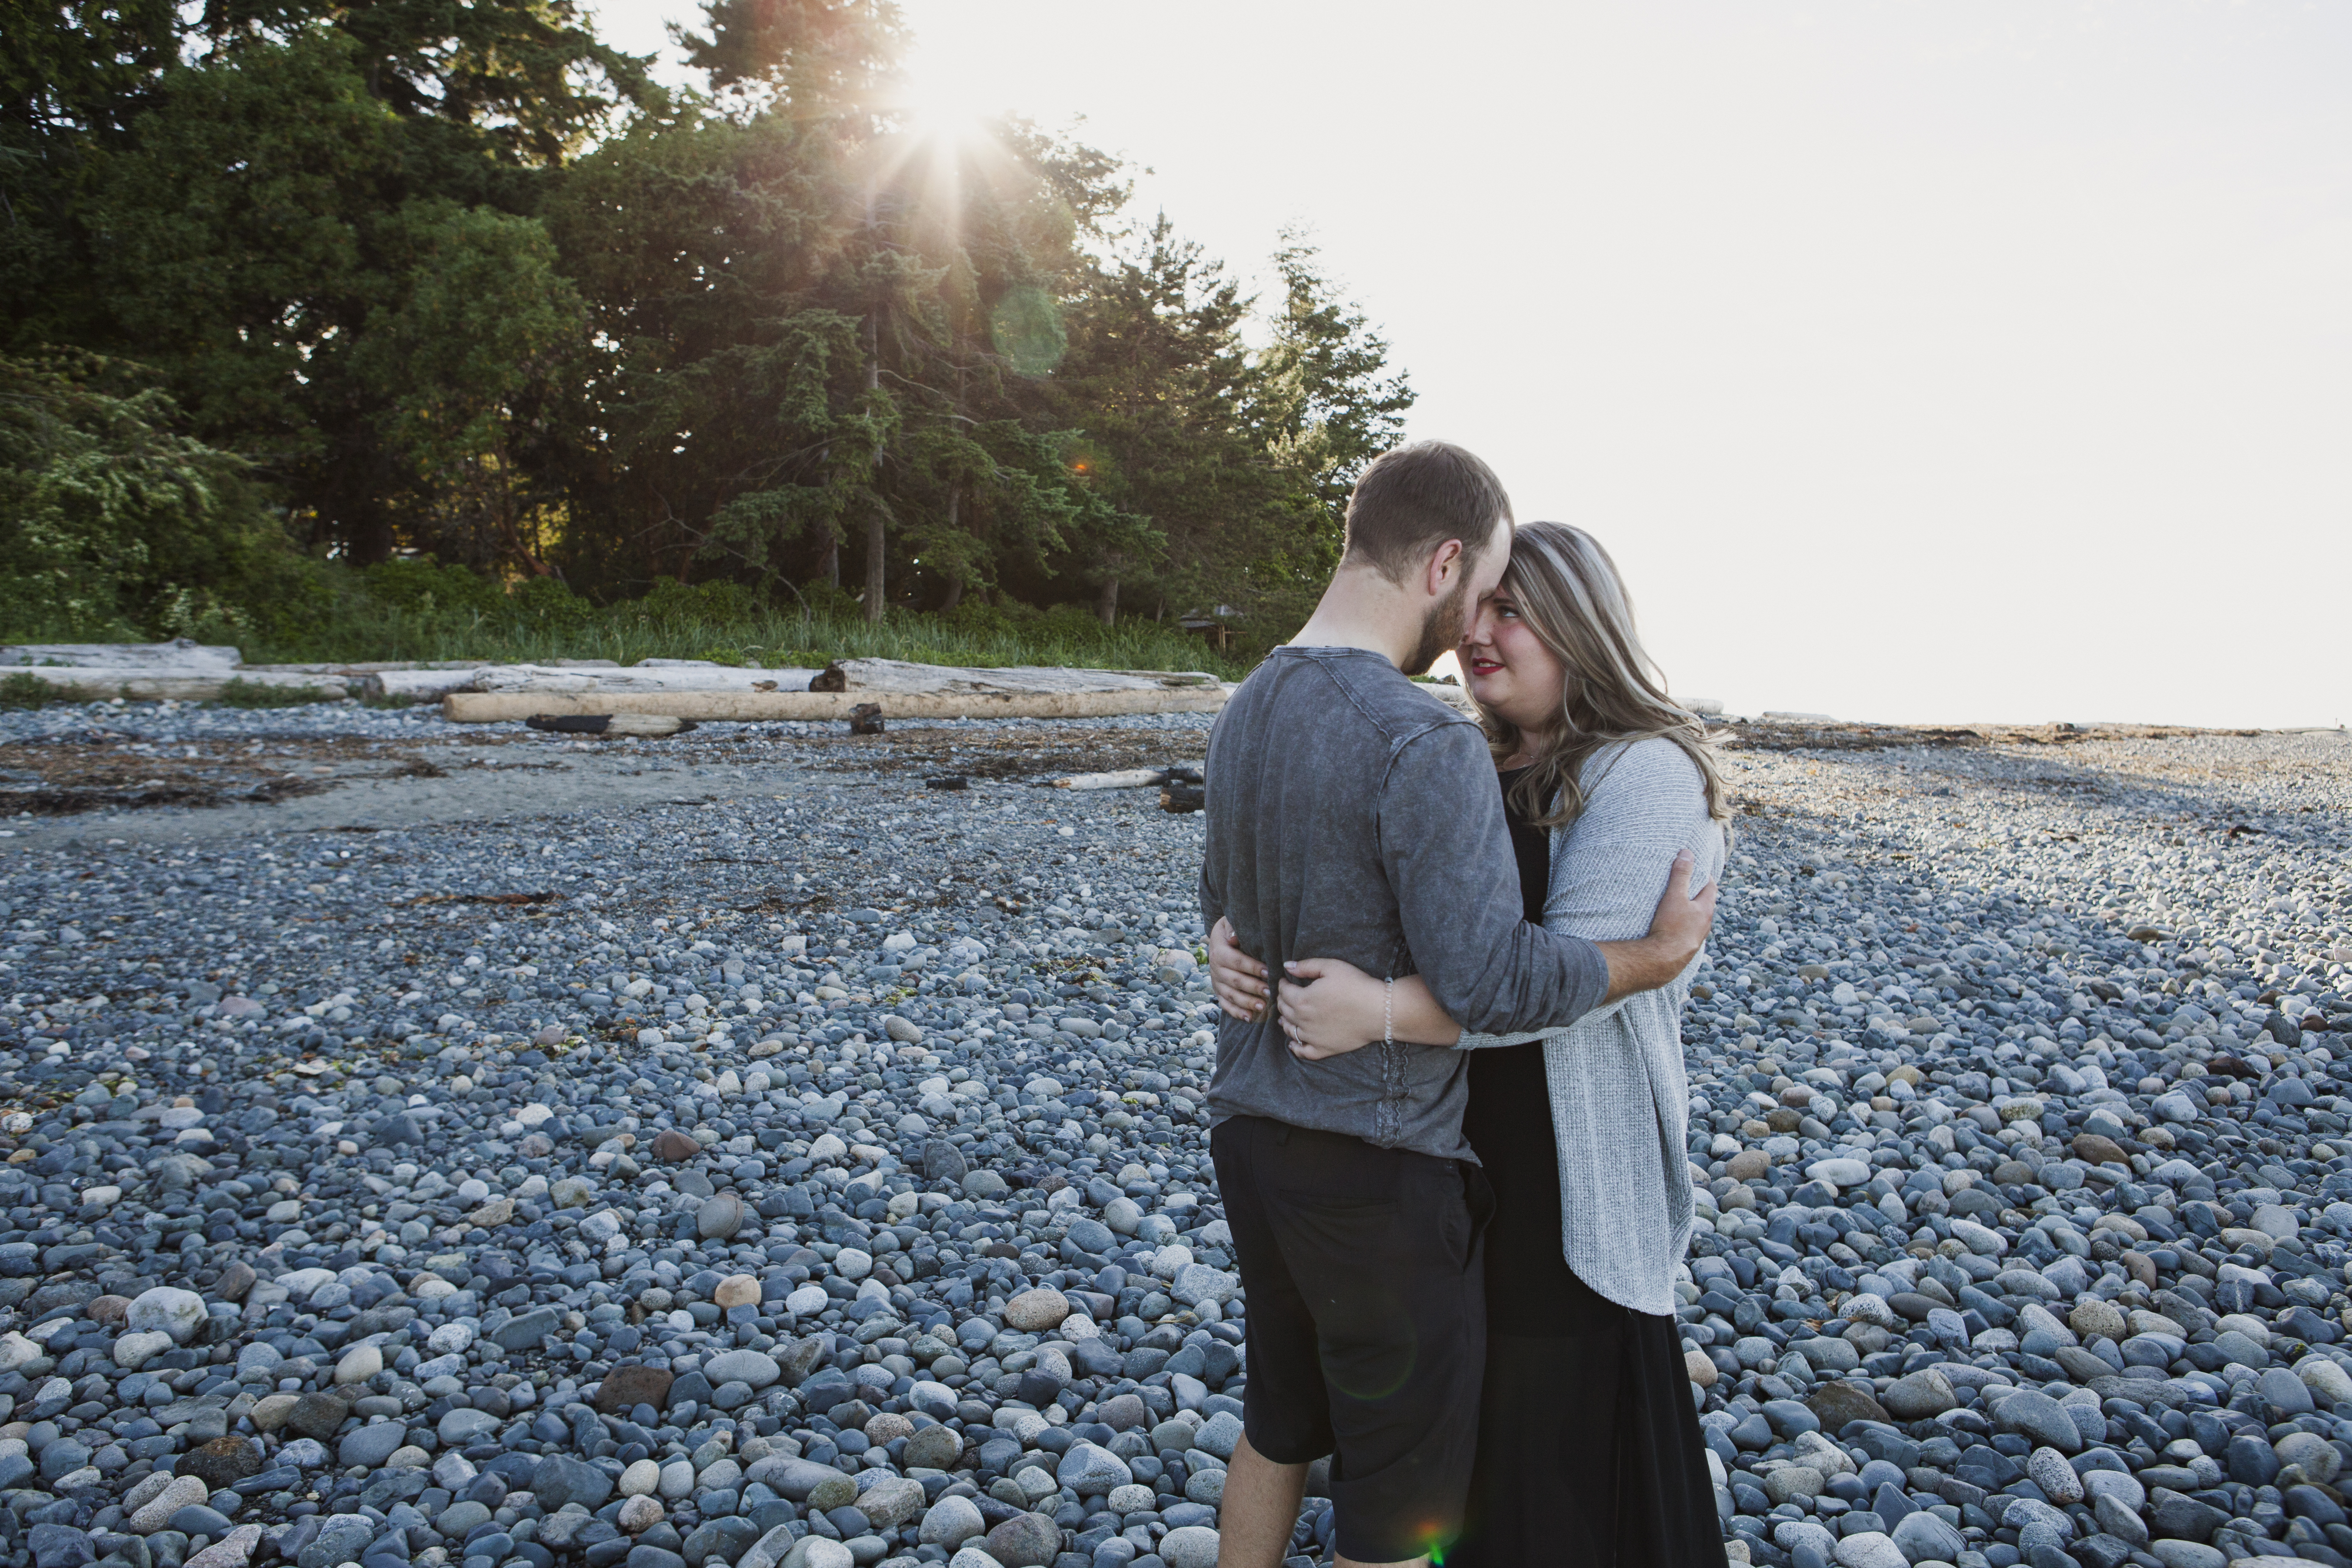 Parksville Wedding Photographer | Longwood Brewery Engagement Photos | Nanaimo Beaches and Pubs